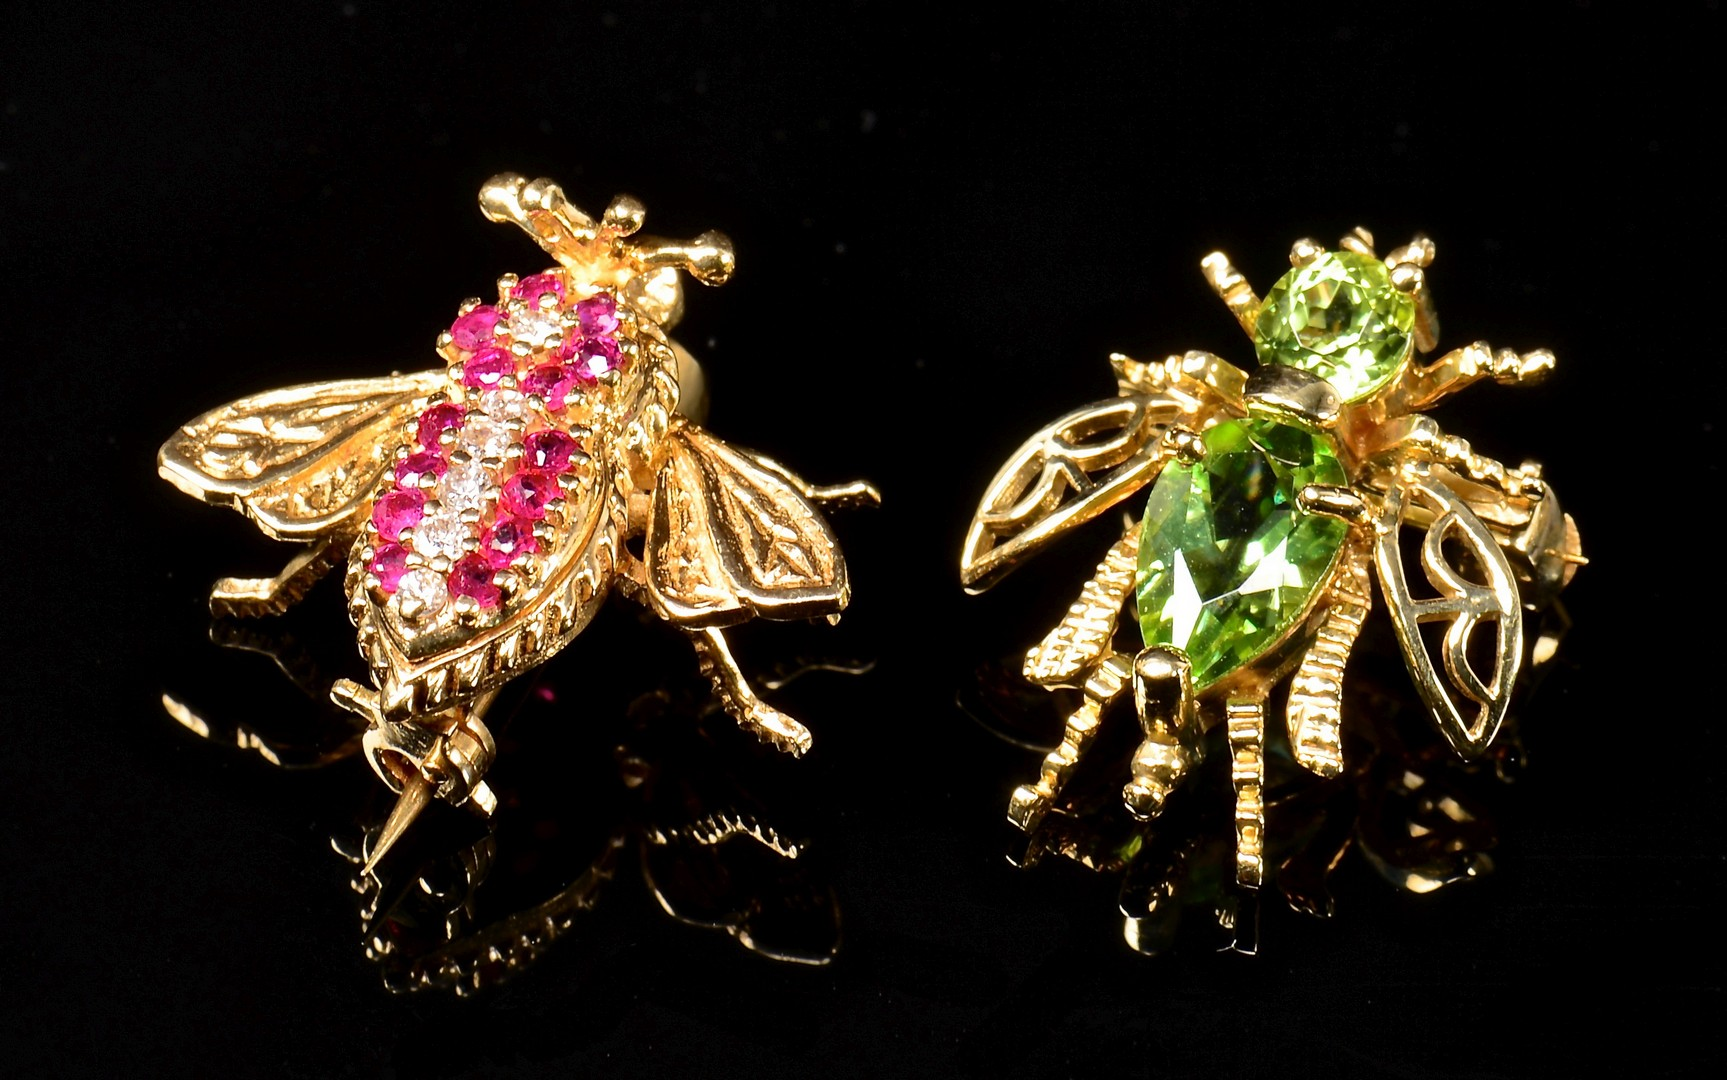 Lot 76: Herbert Rosenthal 18K Bee & 2 others